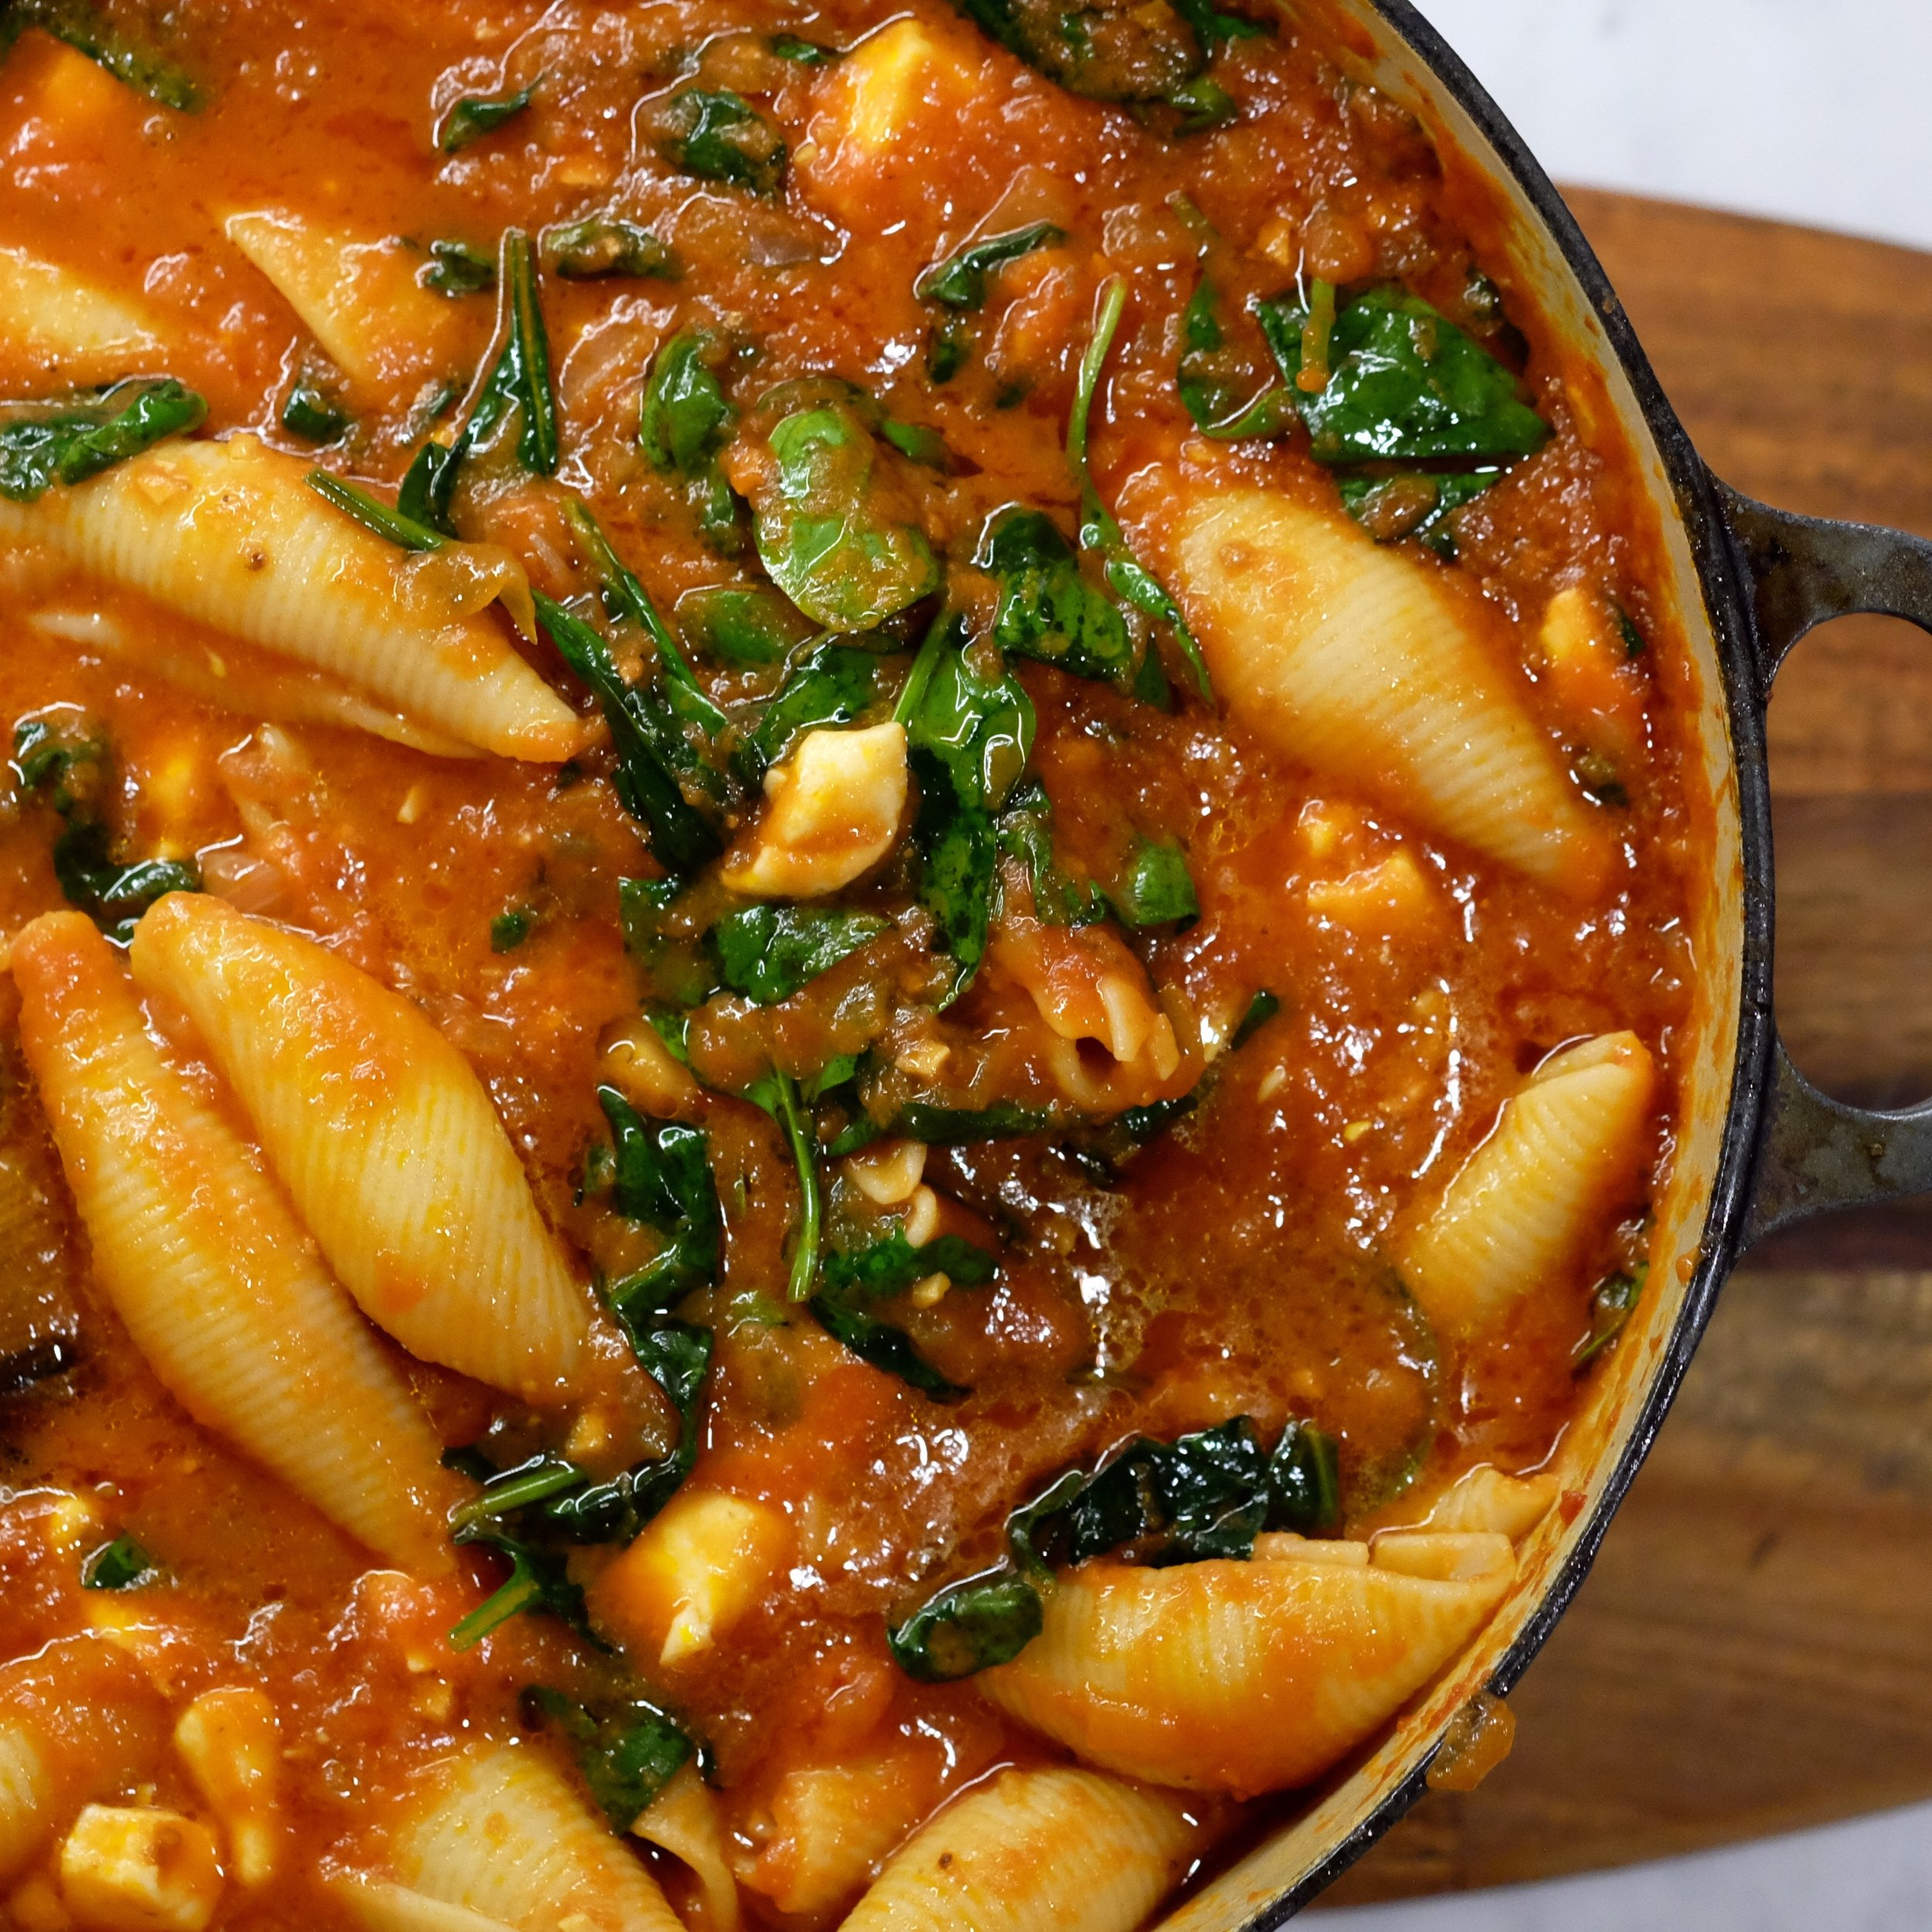 tomato sauce with pasta shells and cheese